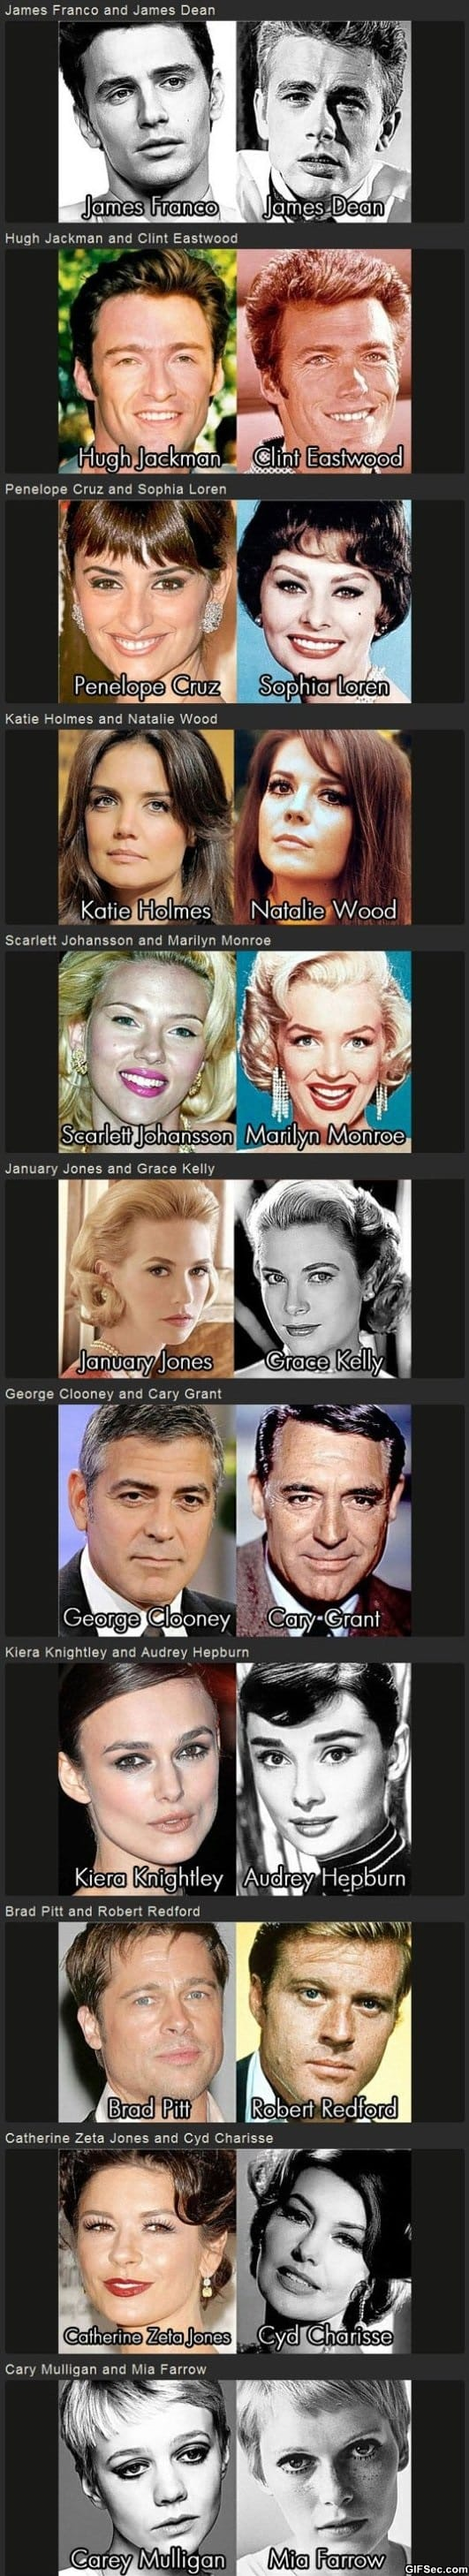 Movie stars and their classic film lookalikes